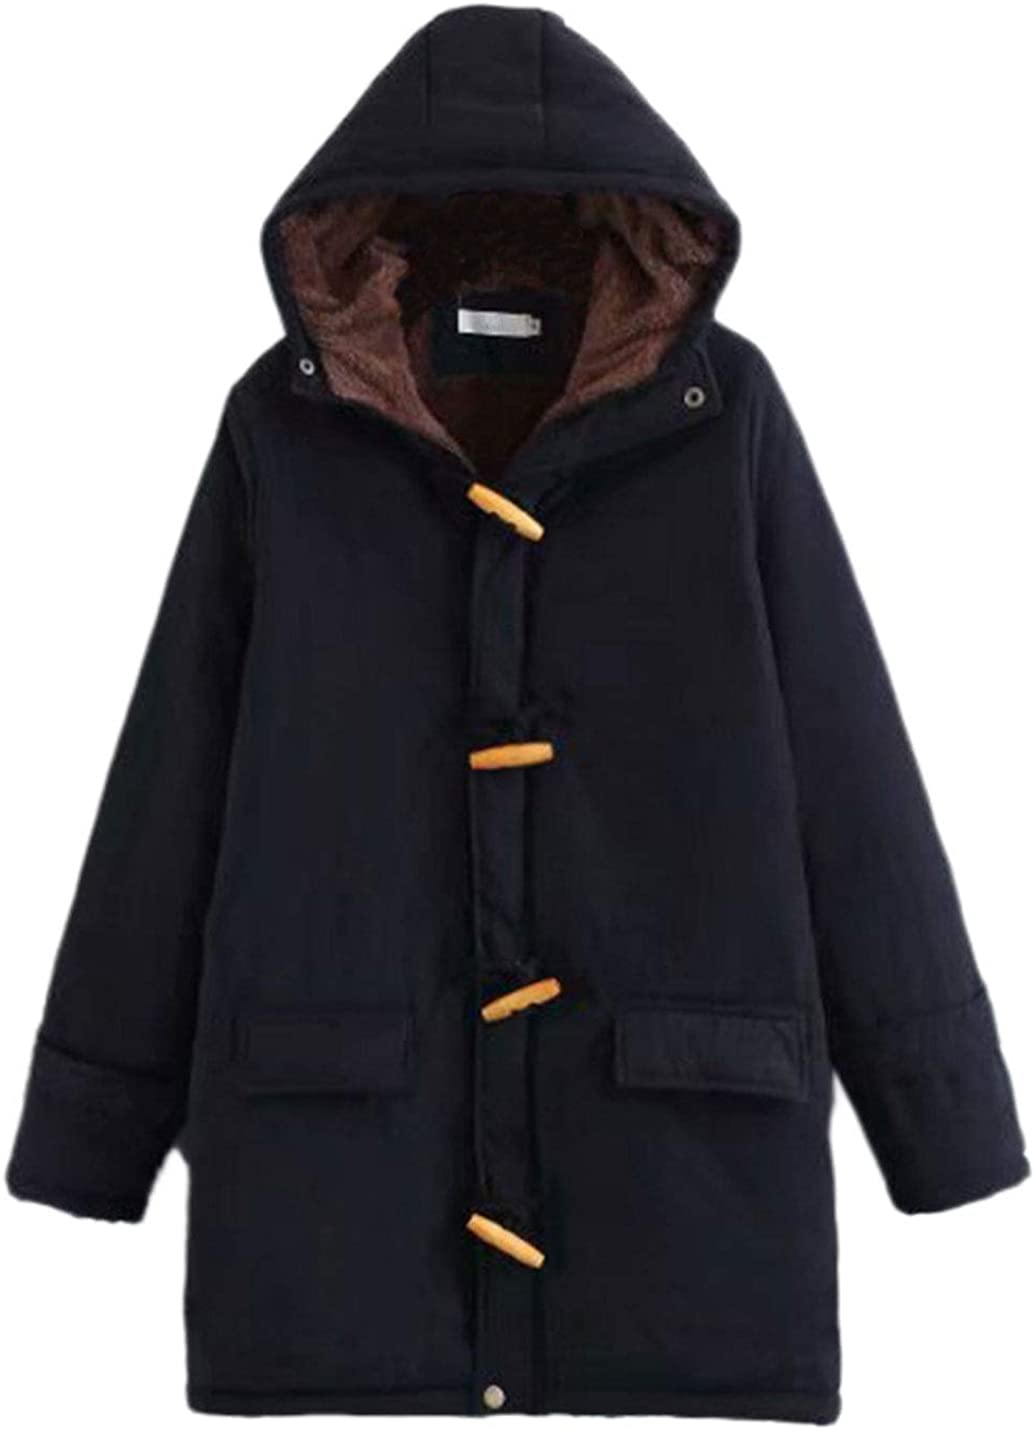 Lentta Women's Slim Toggle Button Thick Hoodie Fleece Sherpa Lined Parka Jackets